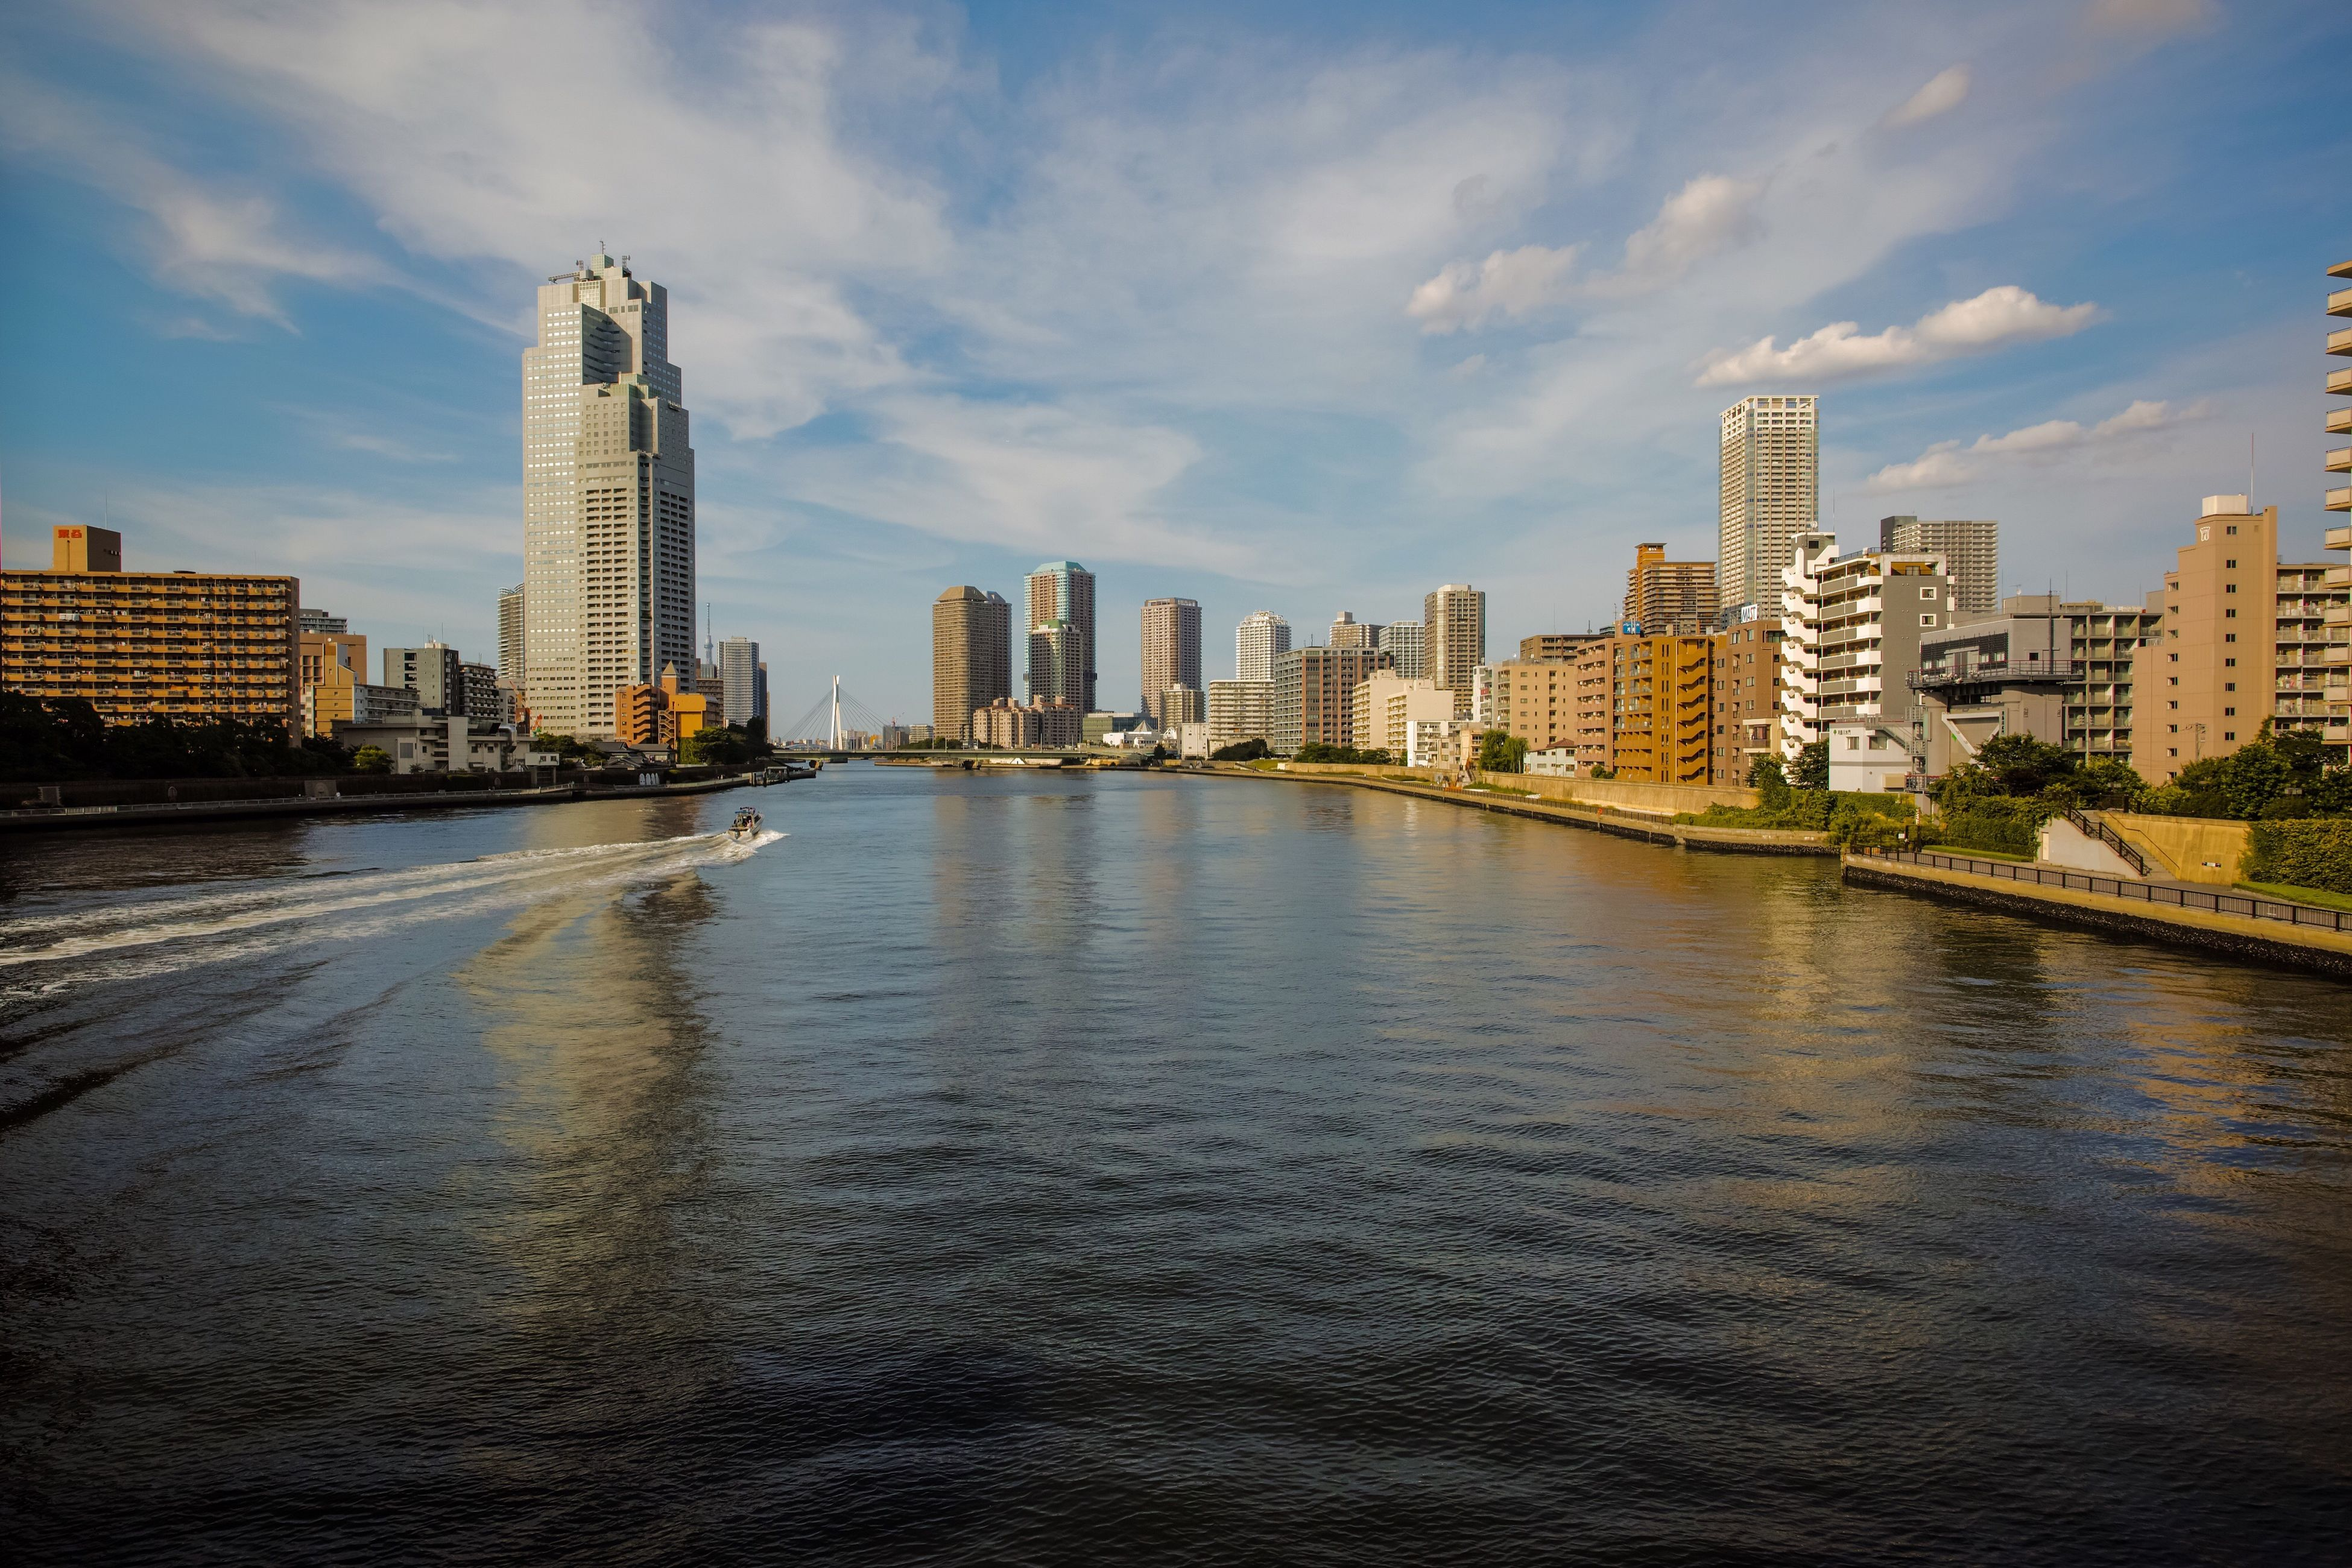 architecture, skyscraper, built structure, building exterior, water, tall - high, city, sky, waterfront, urban skyline, cityscape, tower, cloud - sky, modern, river, travel destinations, downtown district, outdoors, no people, day, nature